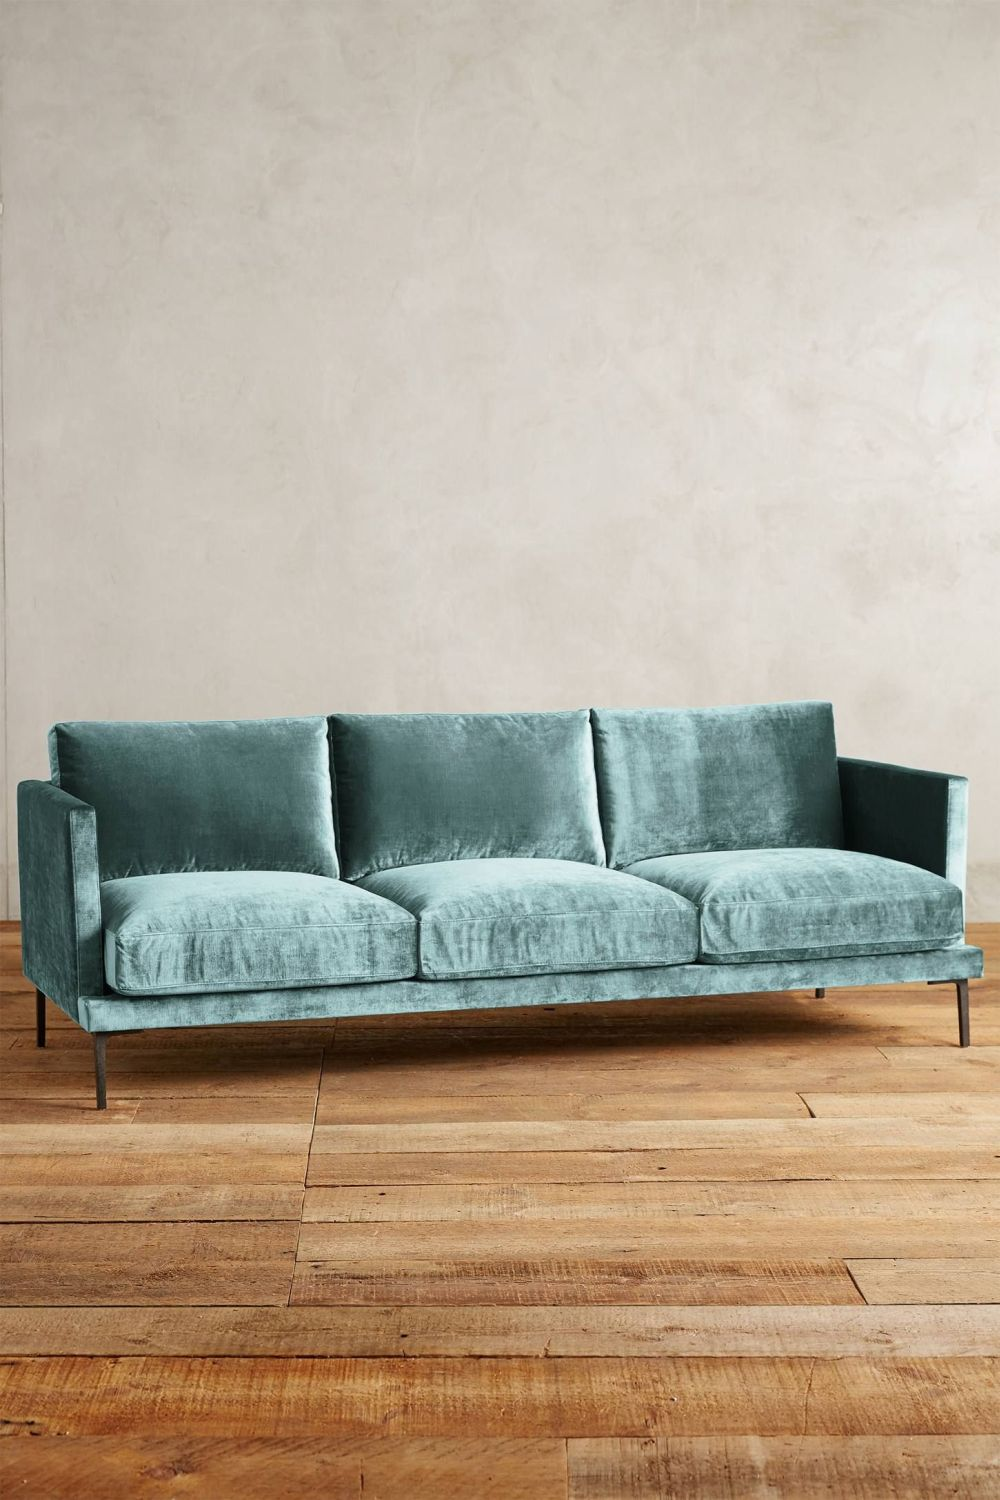 sleek modern velvet sofa design the great seating debate about sofa versus couch: which one is better